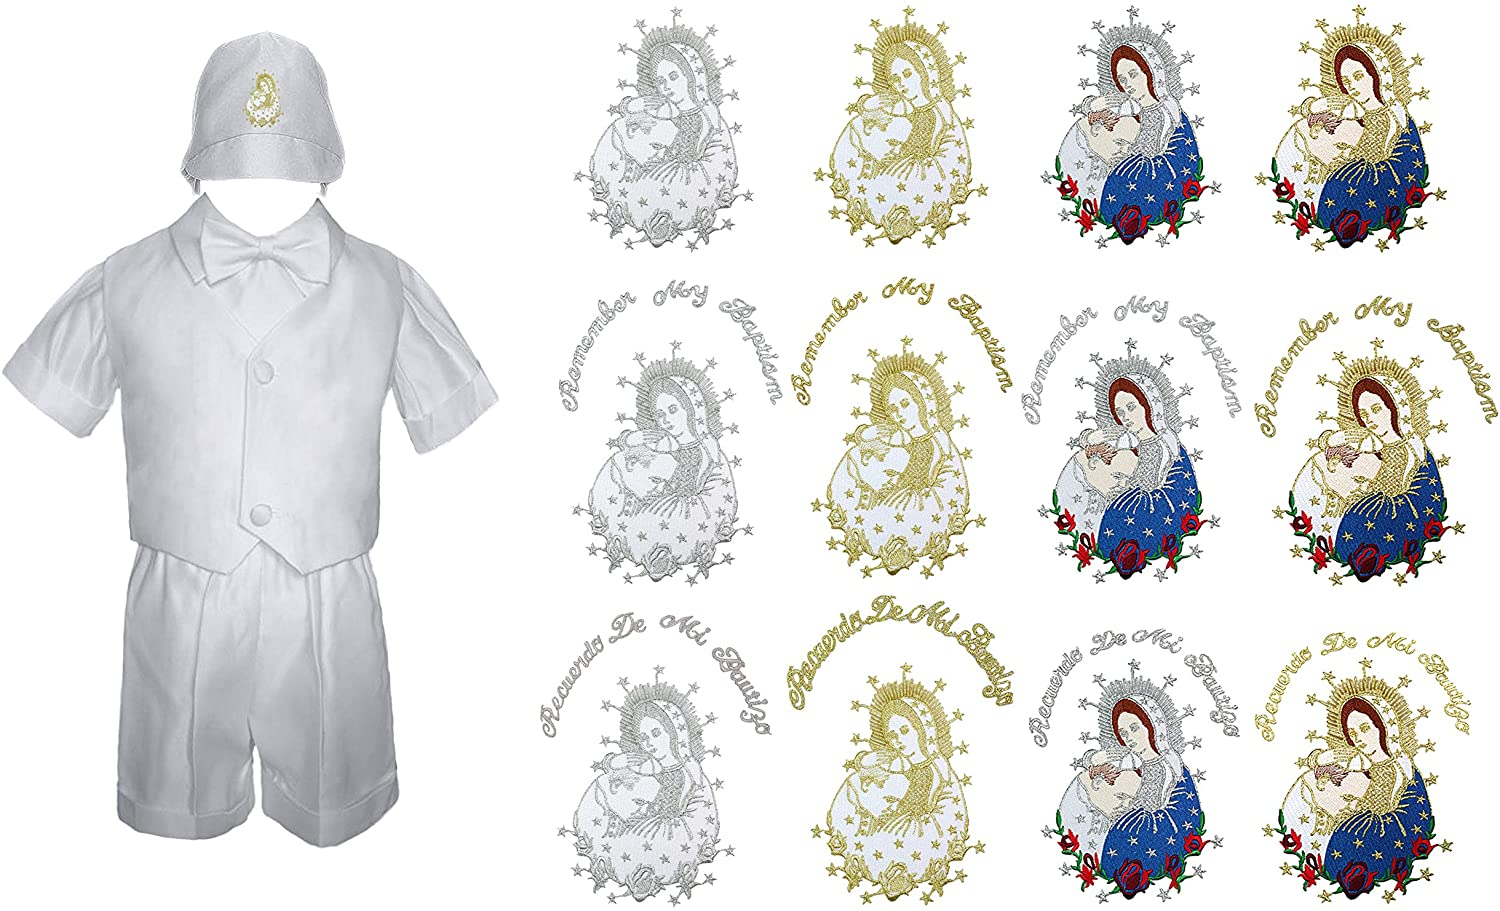 Unotux Baby Toddler Boy Baptism Christening Ceremony Shorts Set Outfits Virgin Mary Pope On Hat New Born-4T